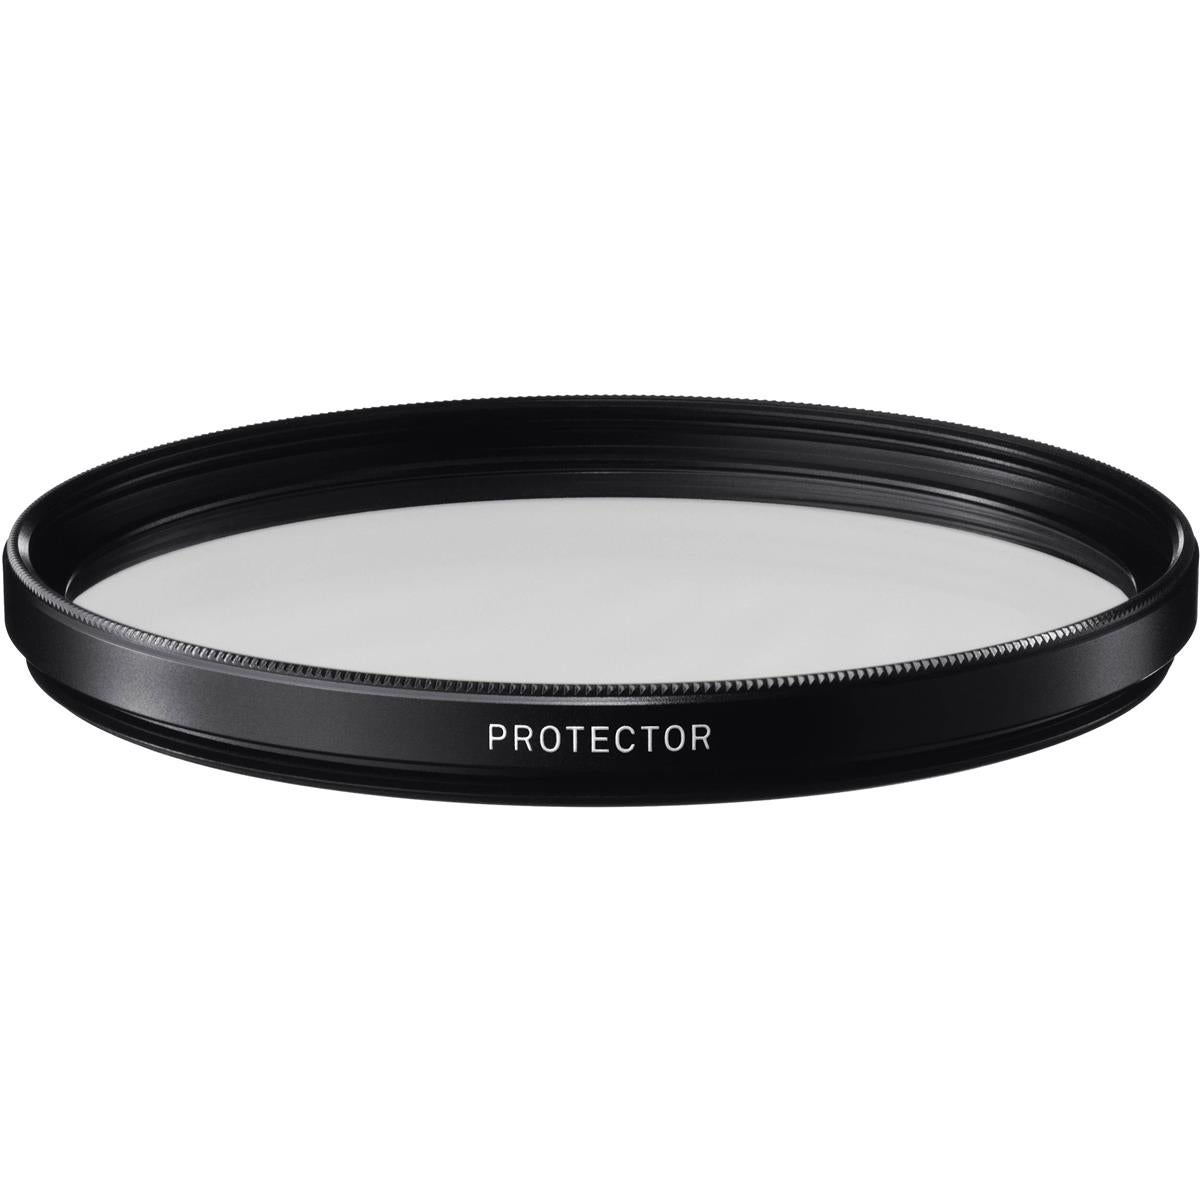 Sigma protector filter